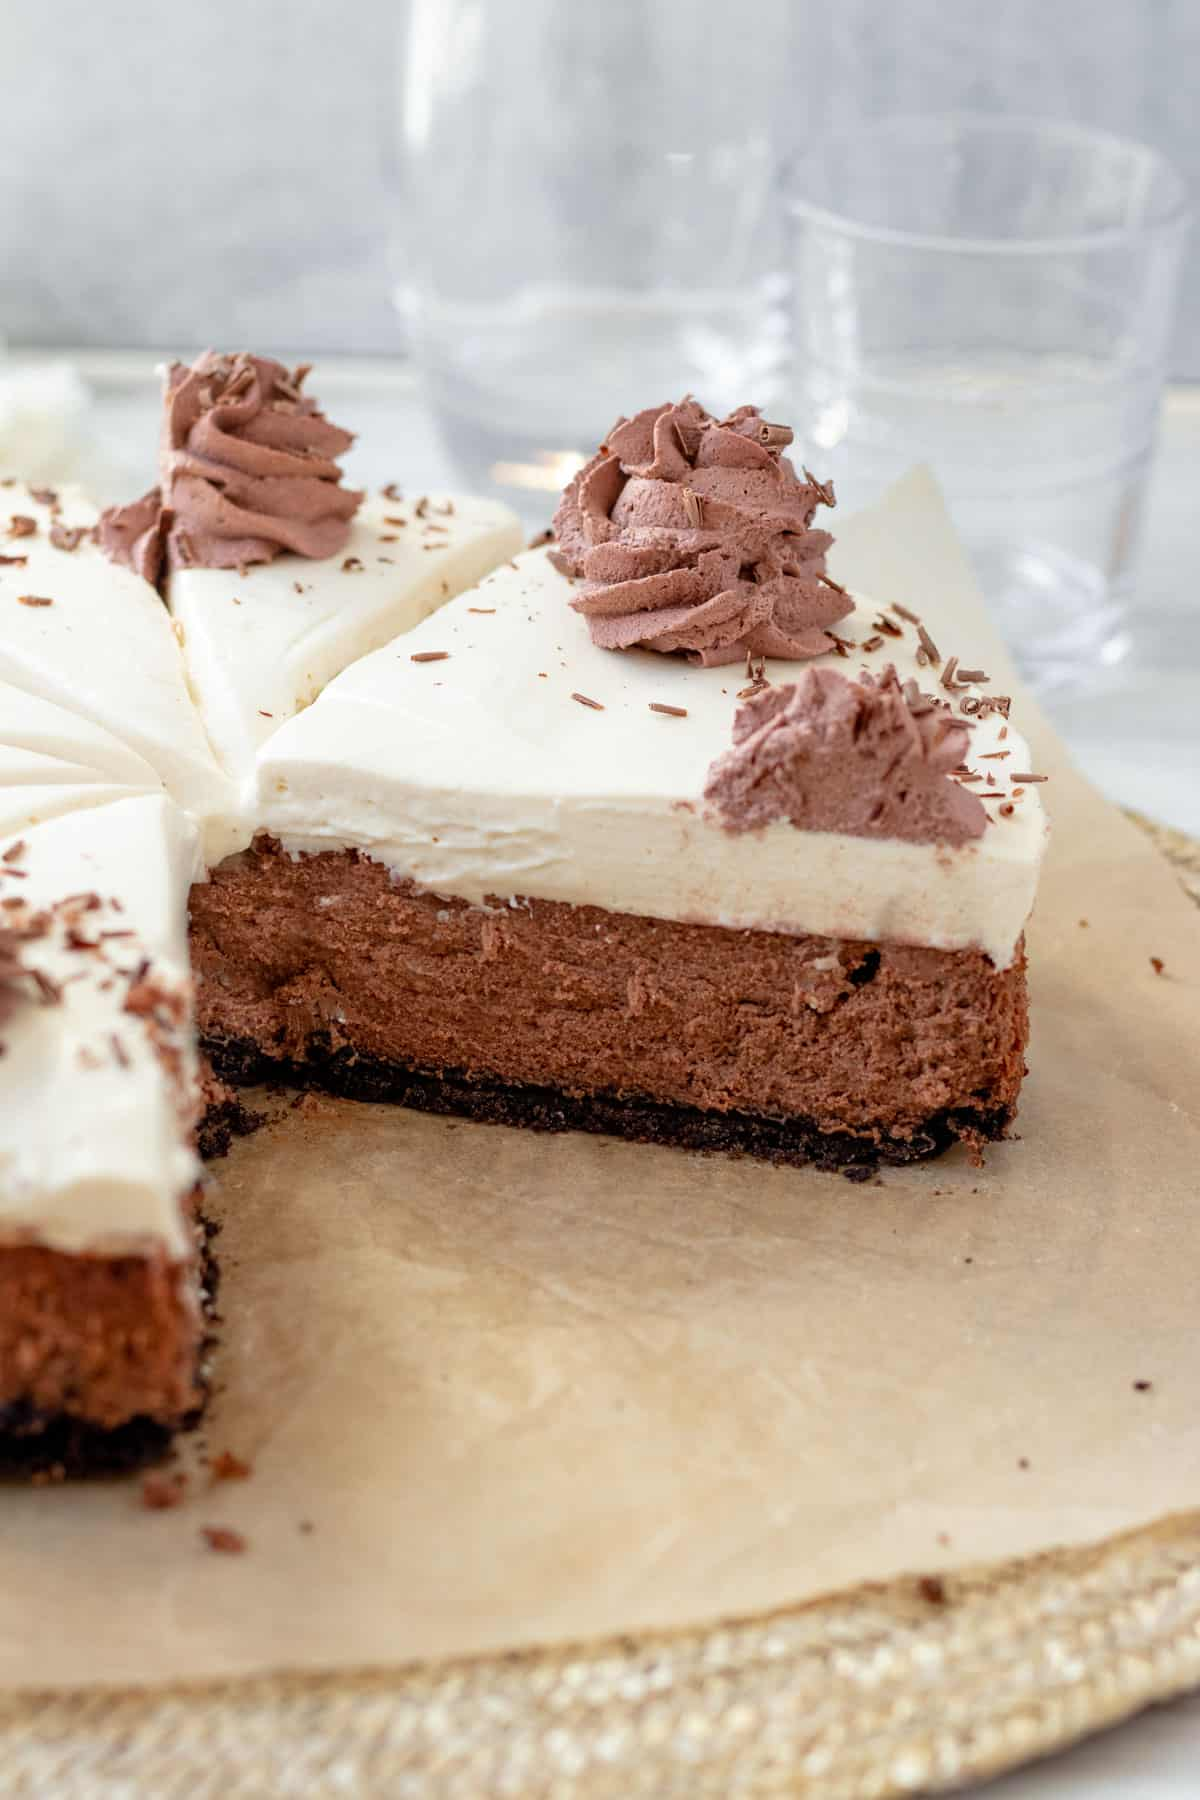 chocolate baileys cheesecake with layer of baileys mousse, sliced and looking at inside view